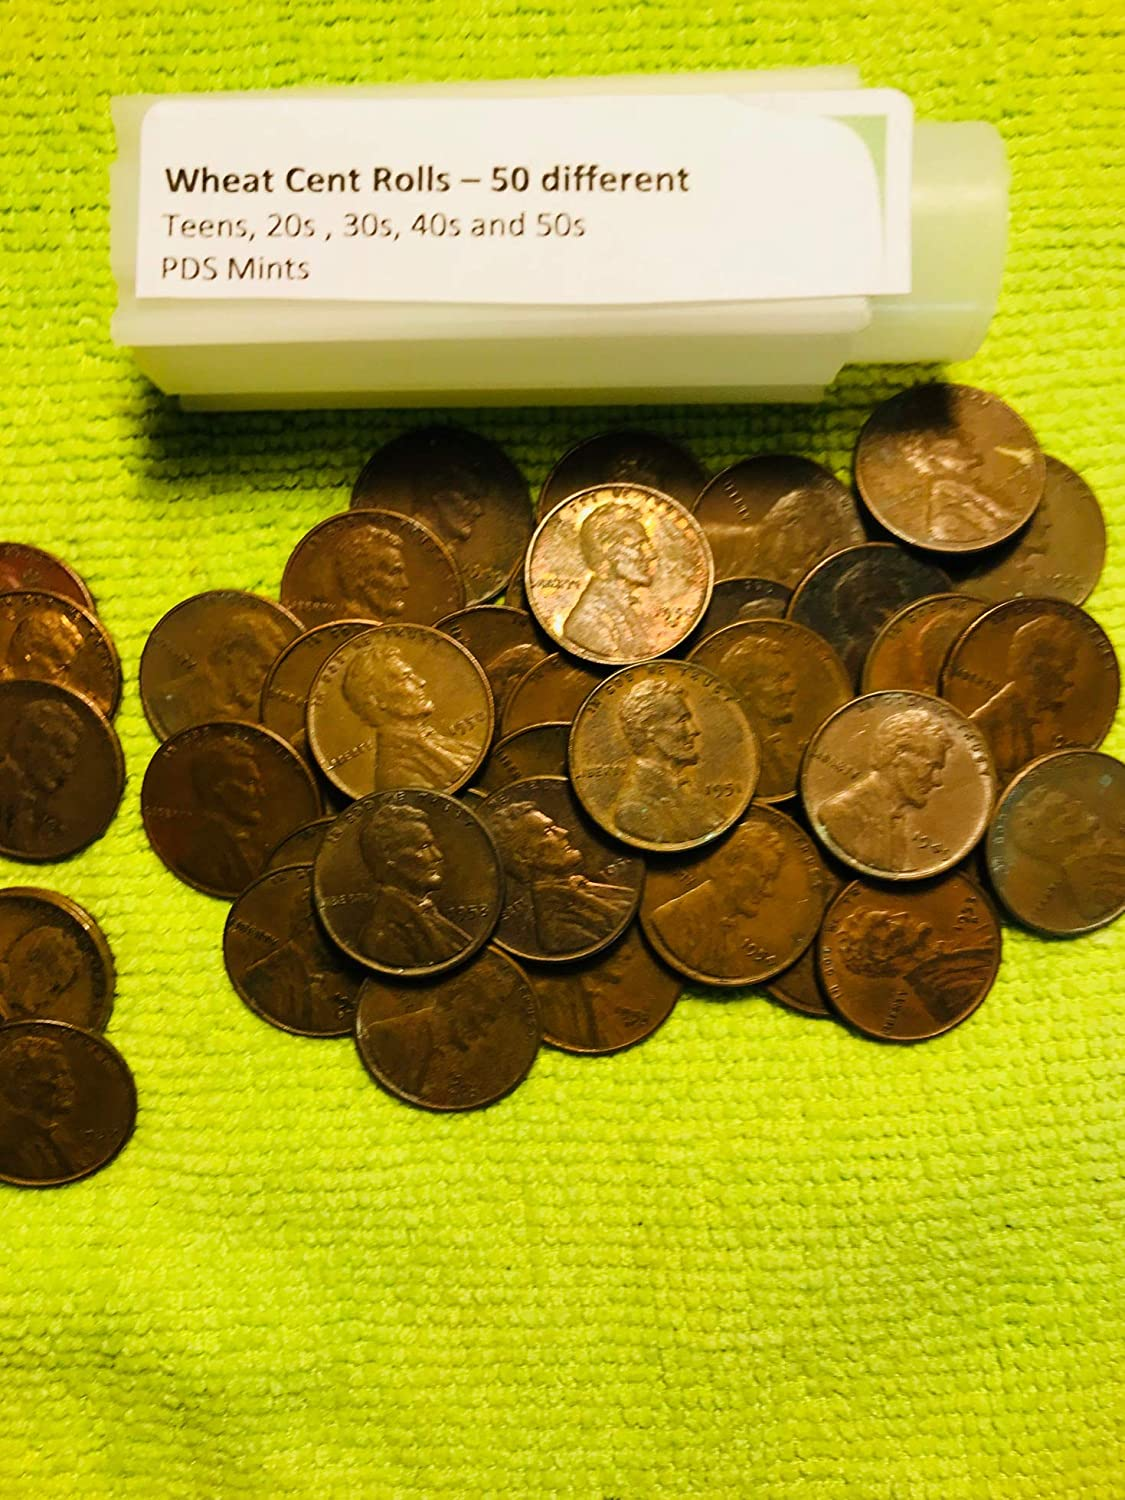 Indian Head Cent SPECIAL Mixed Lincoln Wheat Penny Roll  P-D-S  mint marks